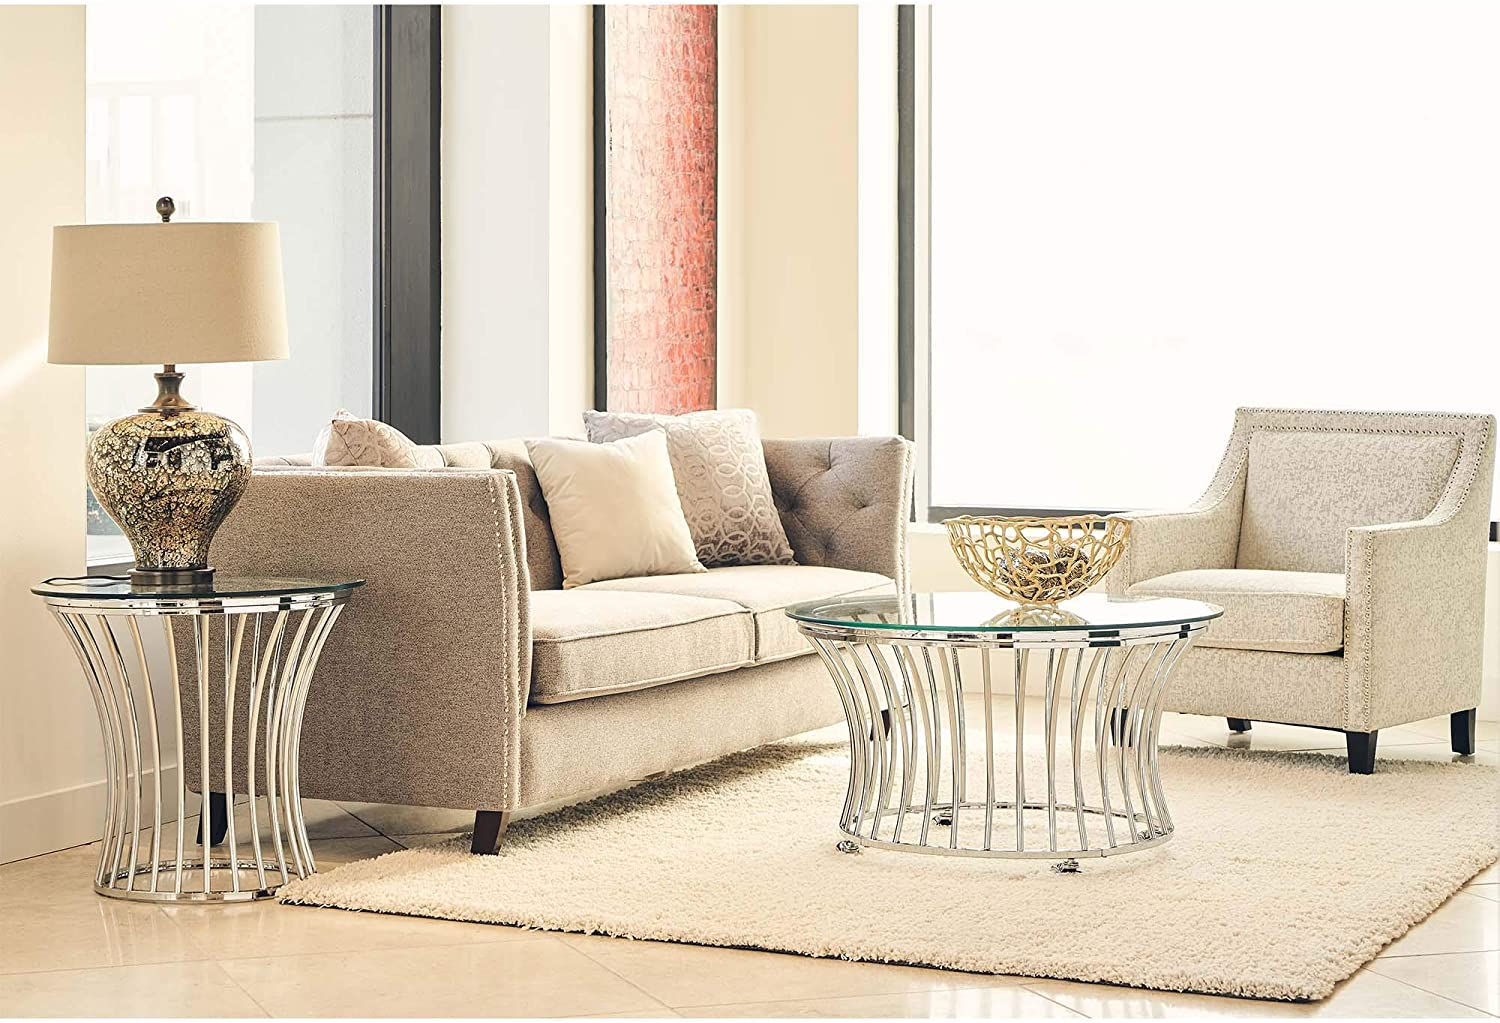 Picket House Furnishings Astoria 2PC Occasional Table Set-Coffee Table /& End Table